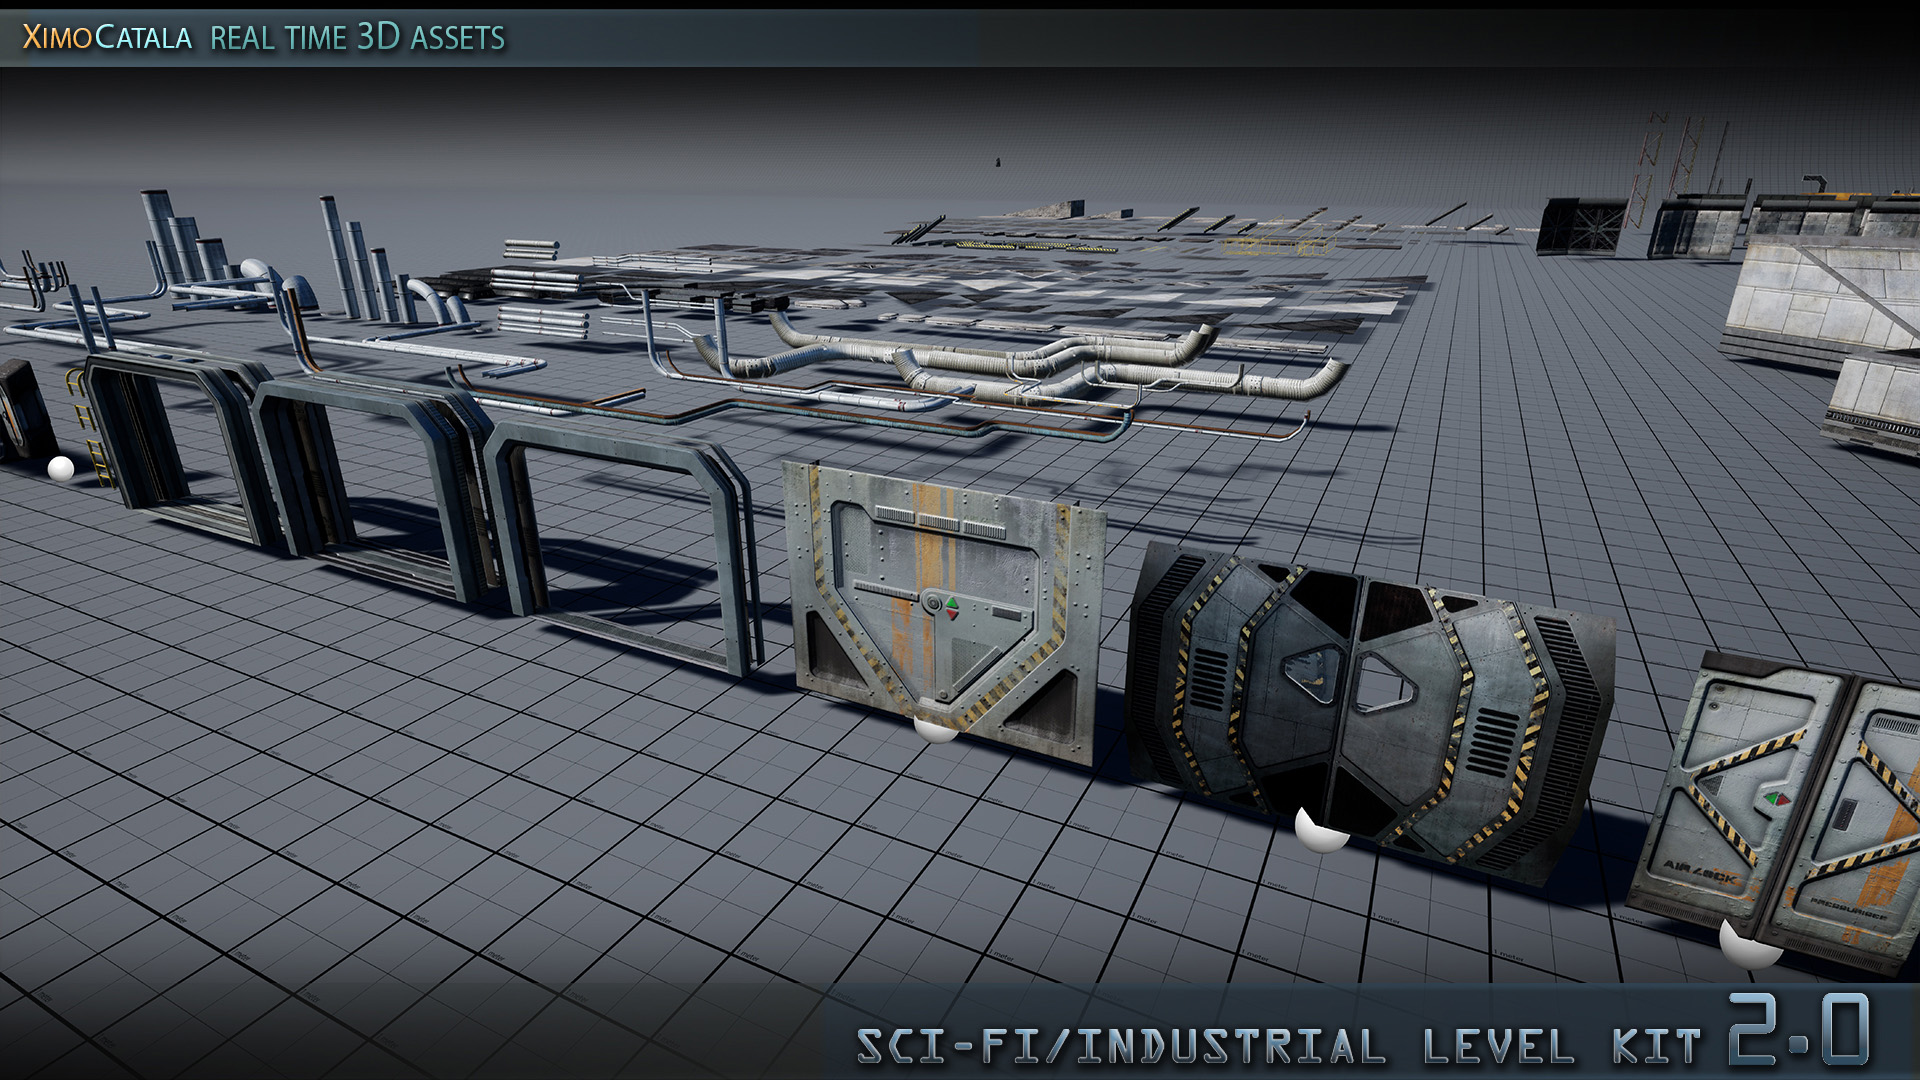 SciFi/Industrial Level Kit 2 0 by Ximo Catala in